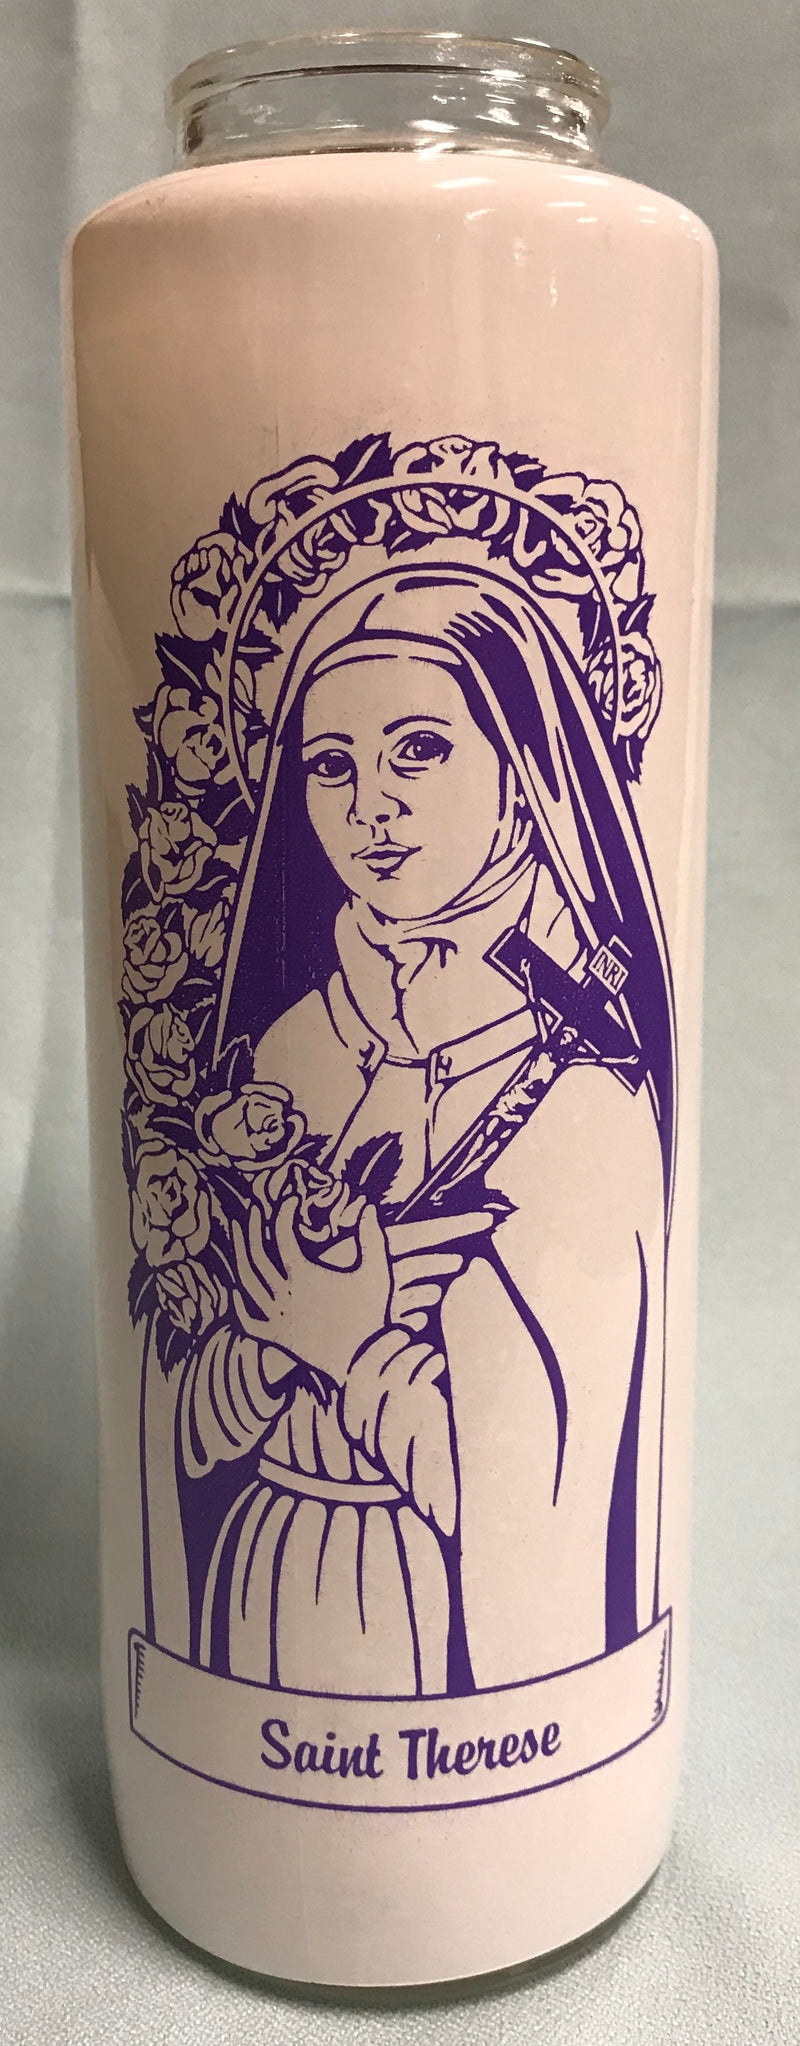 6-DAY ST THERESE CANDLE